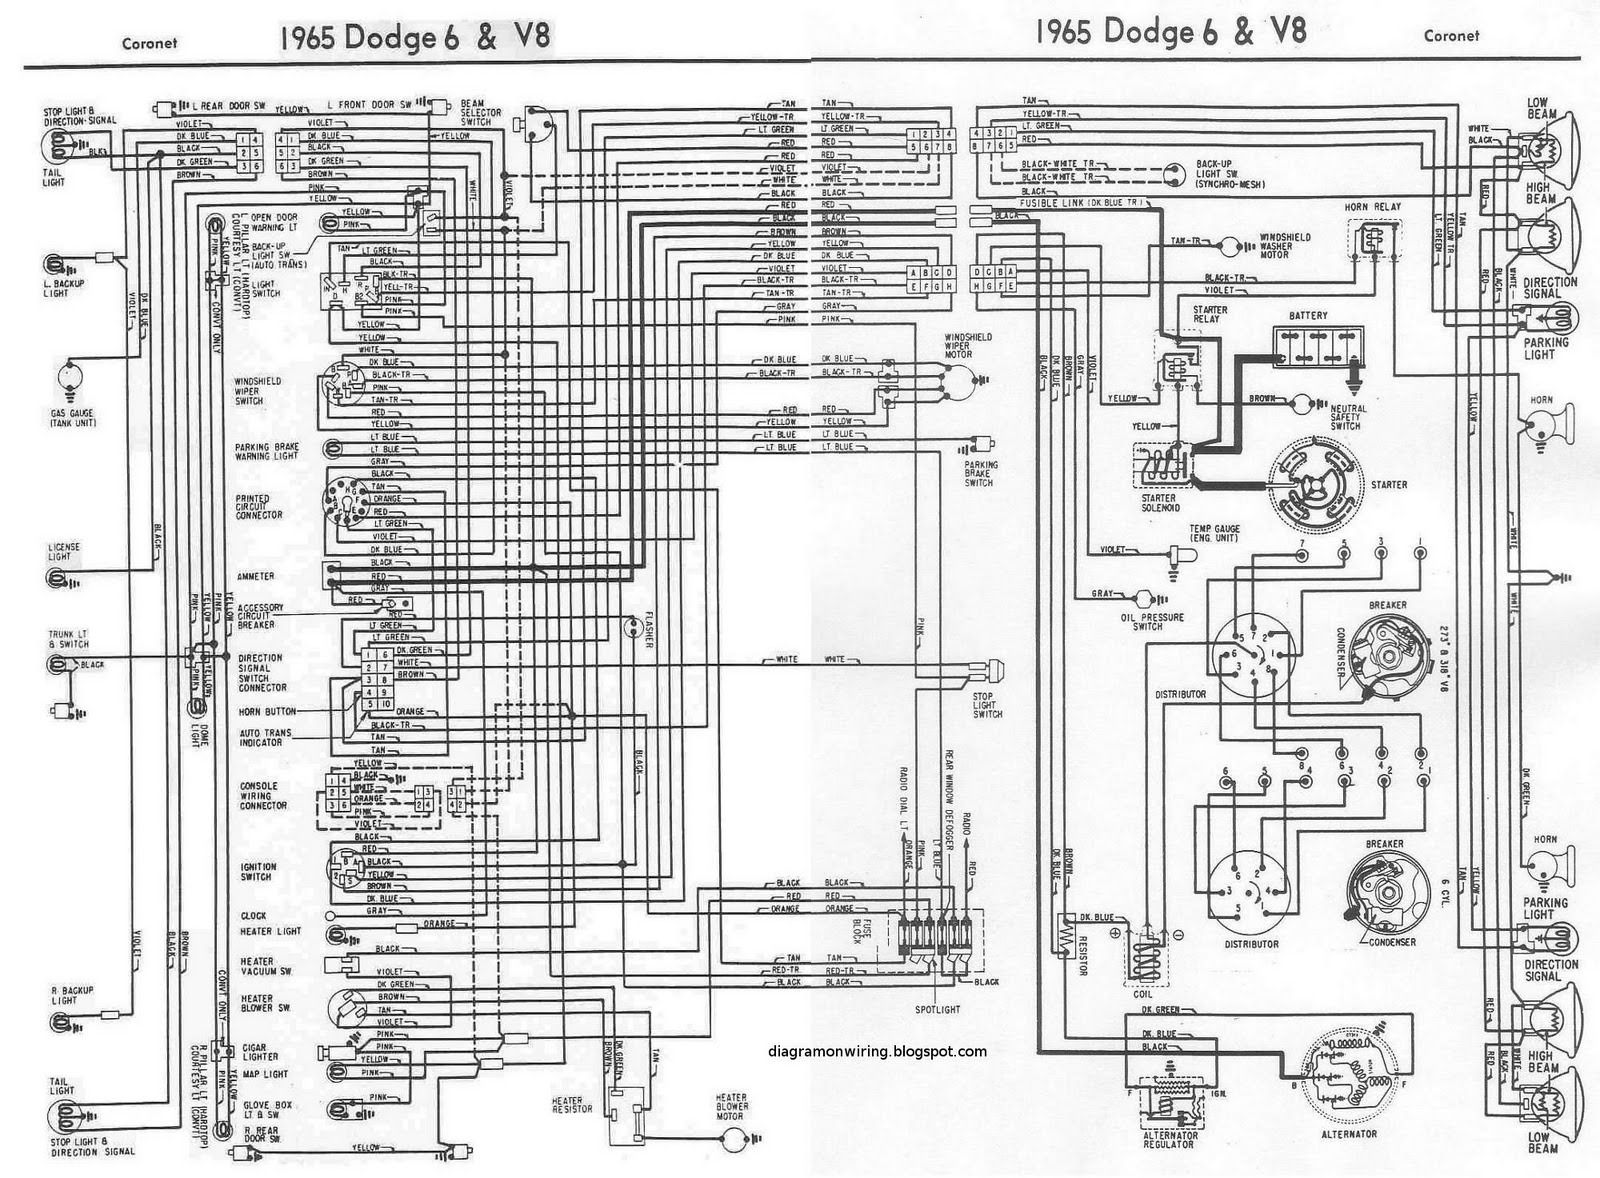 69 plymouth roadrunner wiring diagram schematic wiring diagram list1968 dodge coronet wiring harness data wiring diagram [ 1600 x 1178 Pixel ]